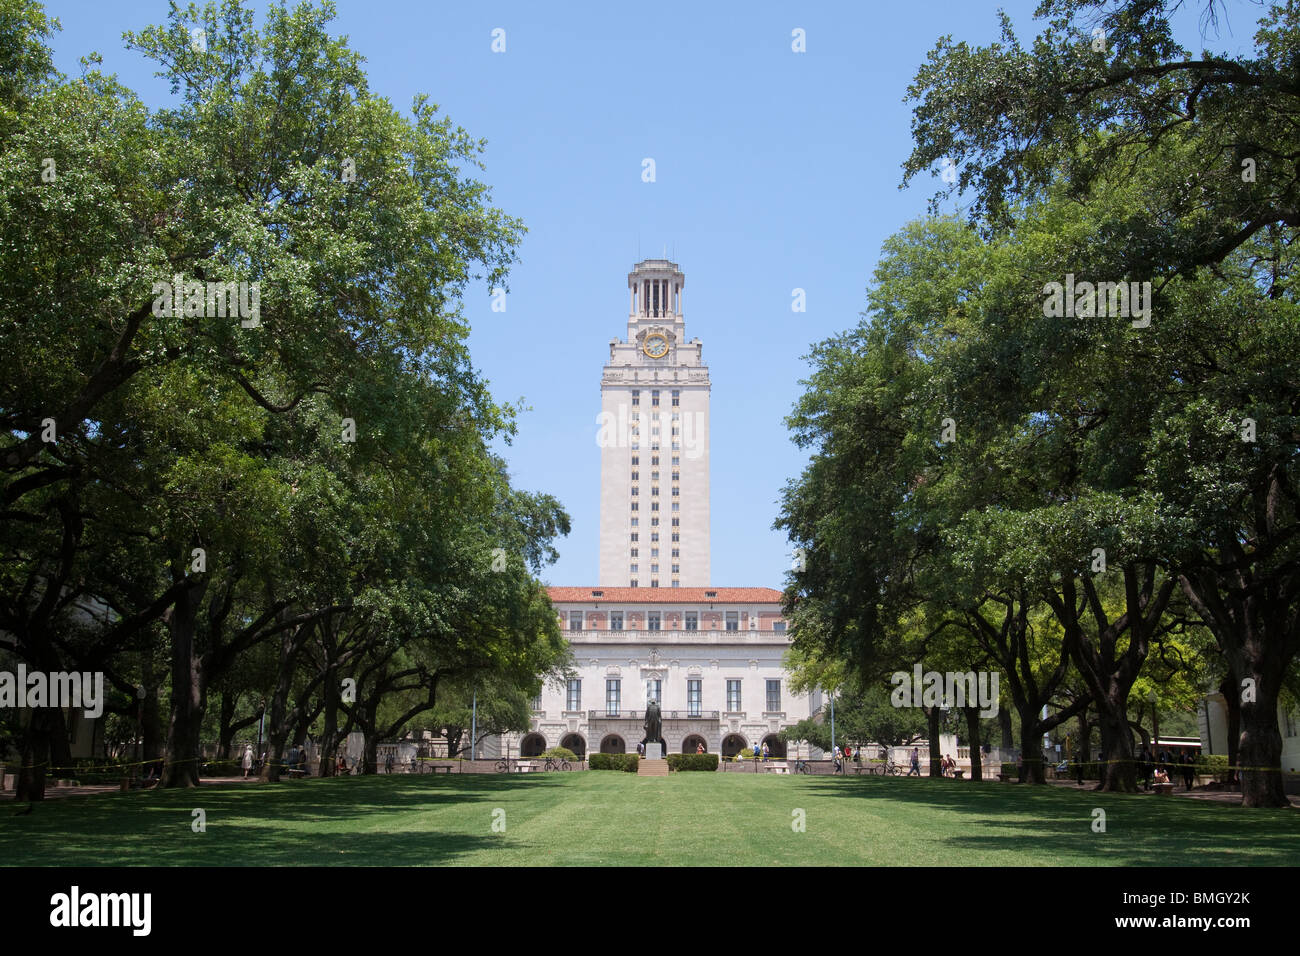 University of Texas Tower from front lawn in Austin Texas - Stock Image